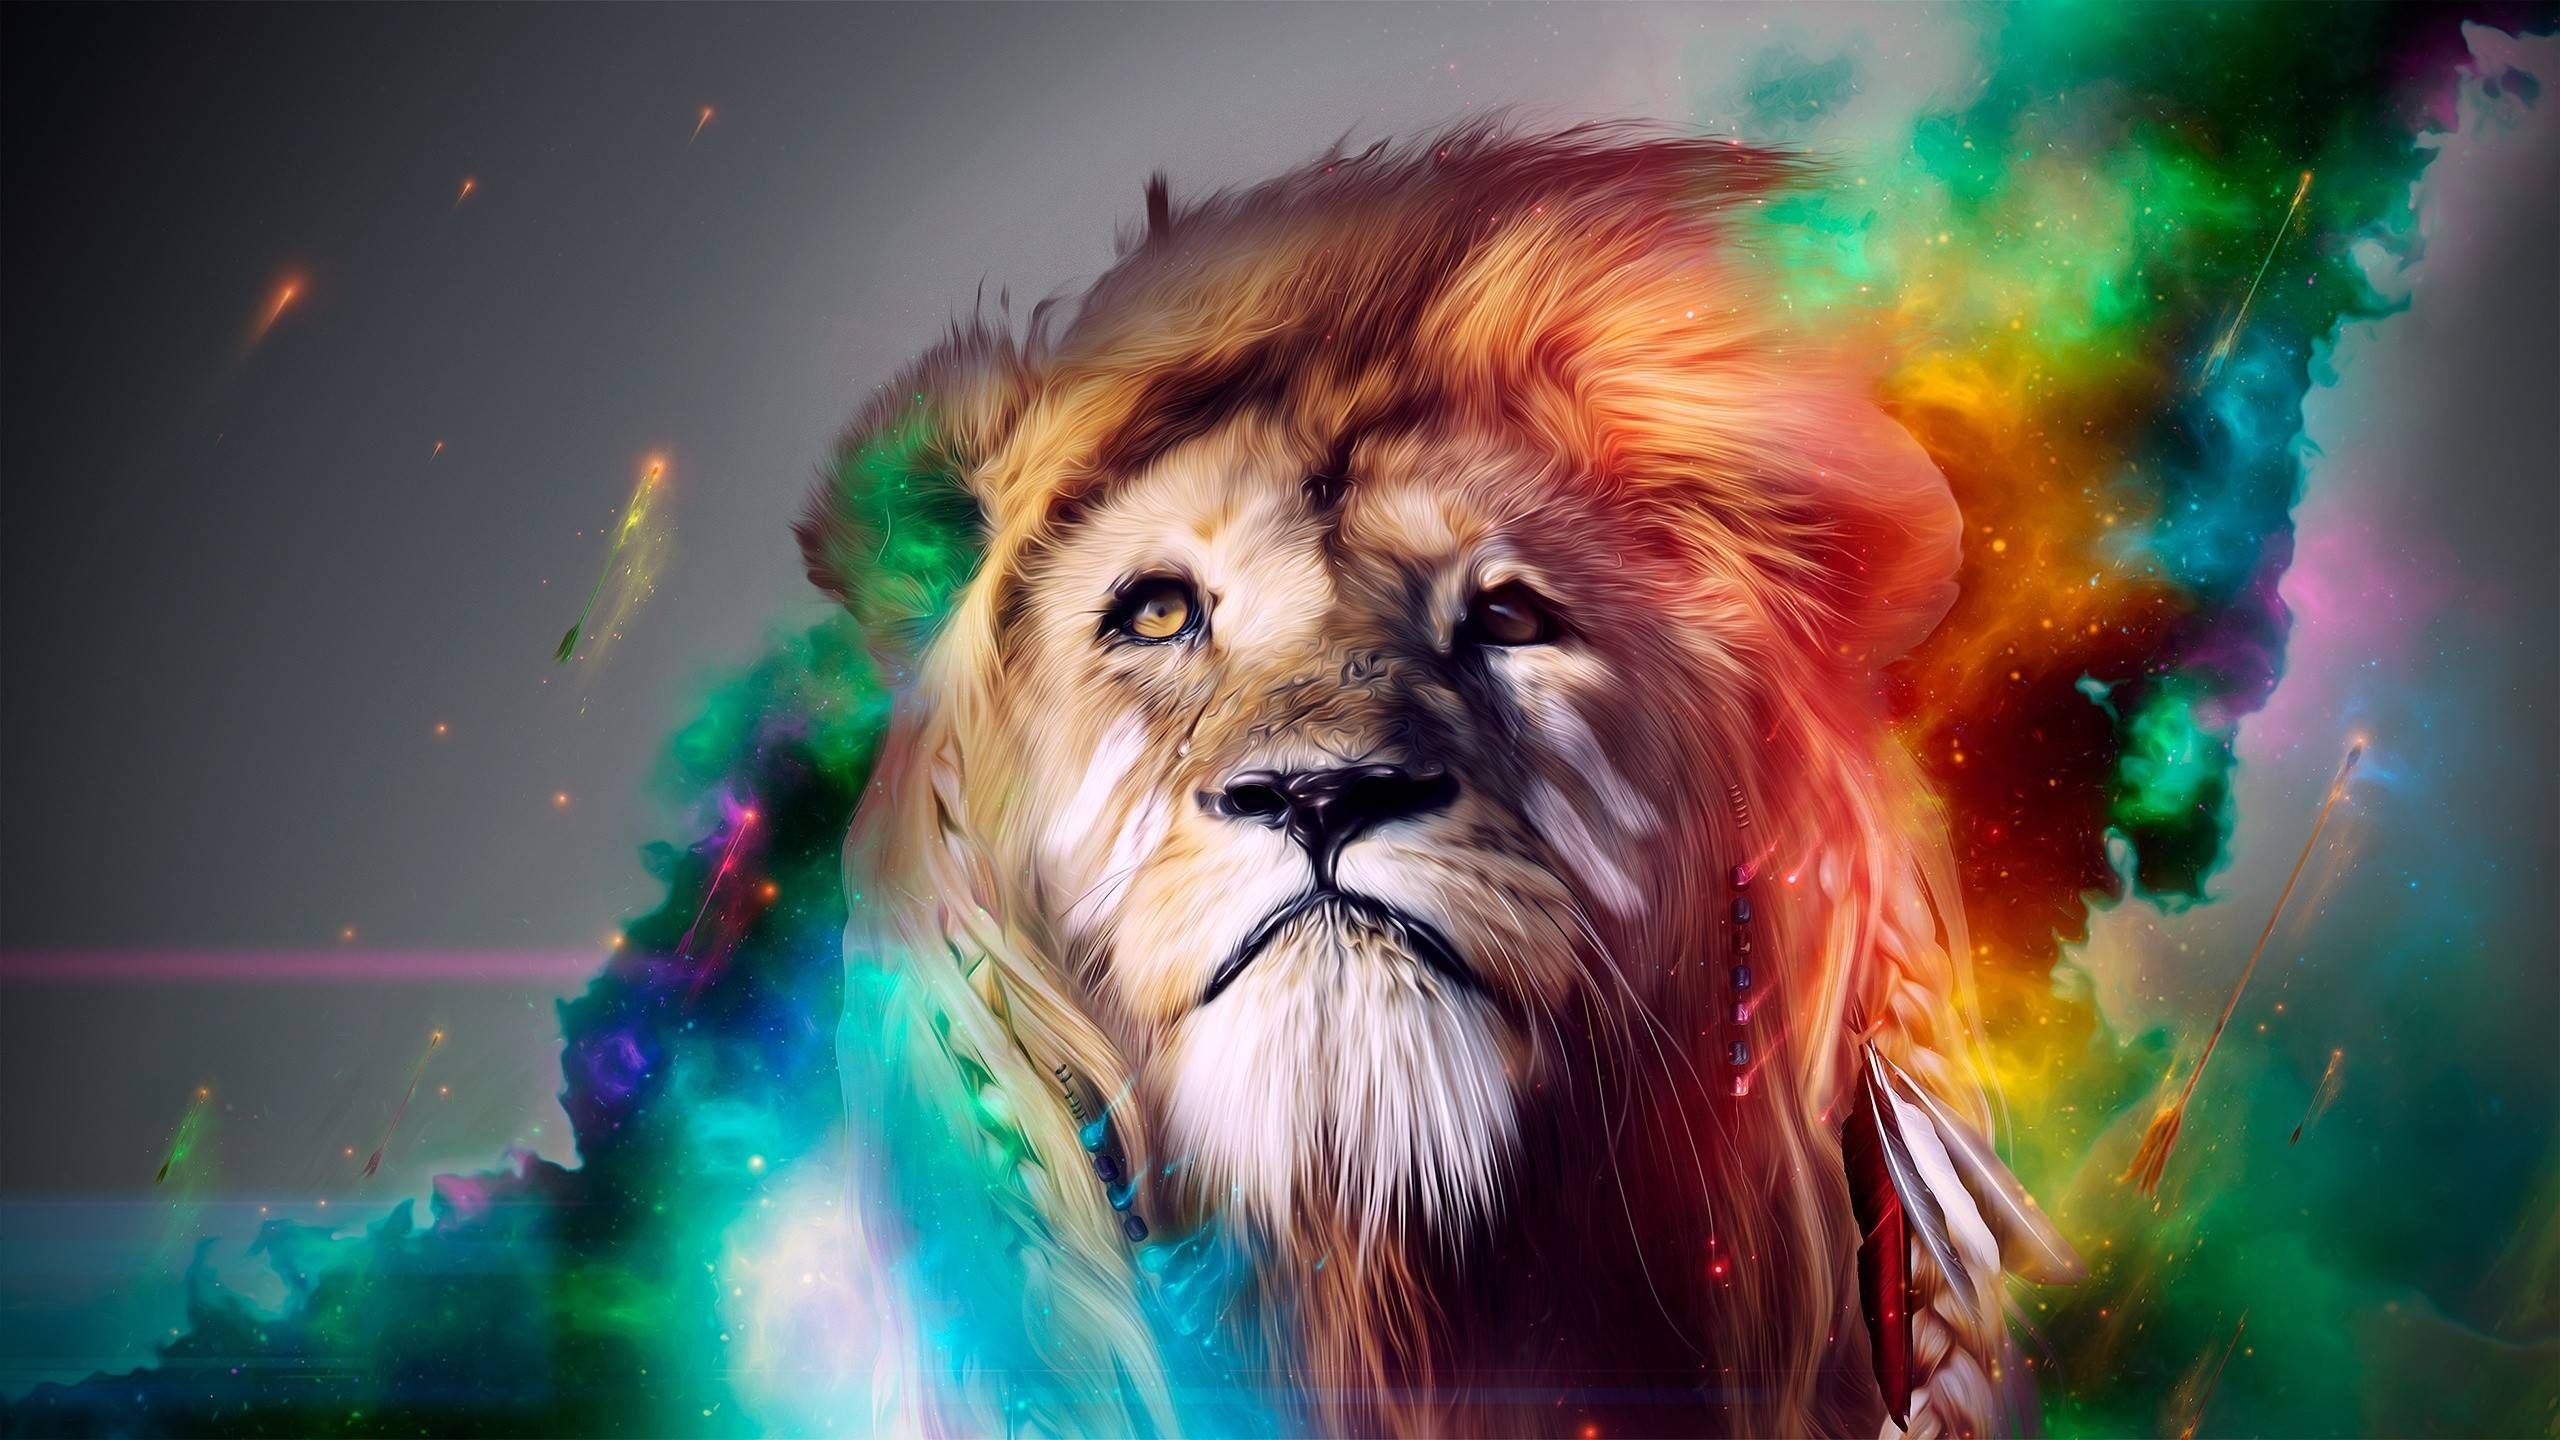 Cool Wallpaper Designs Background Dump  Wallpaper Lion Illustration And Art Pics